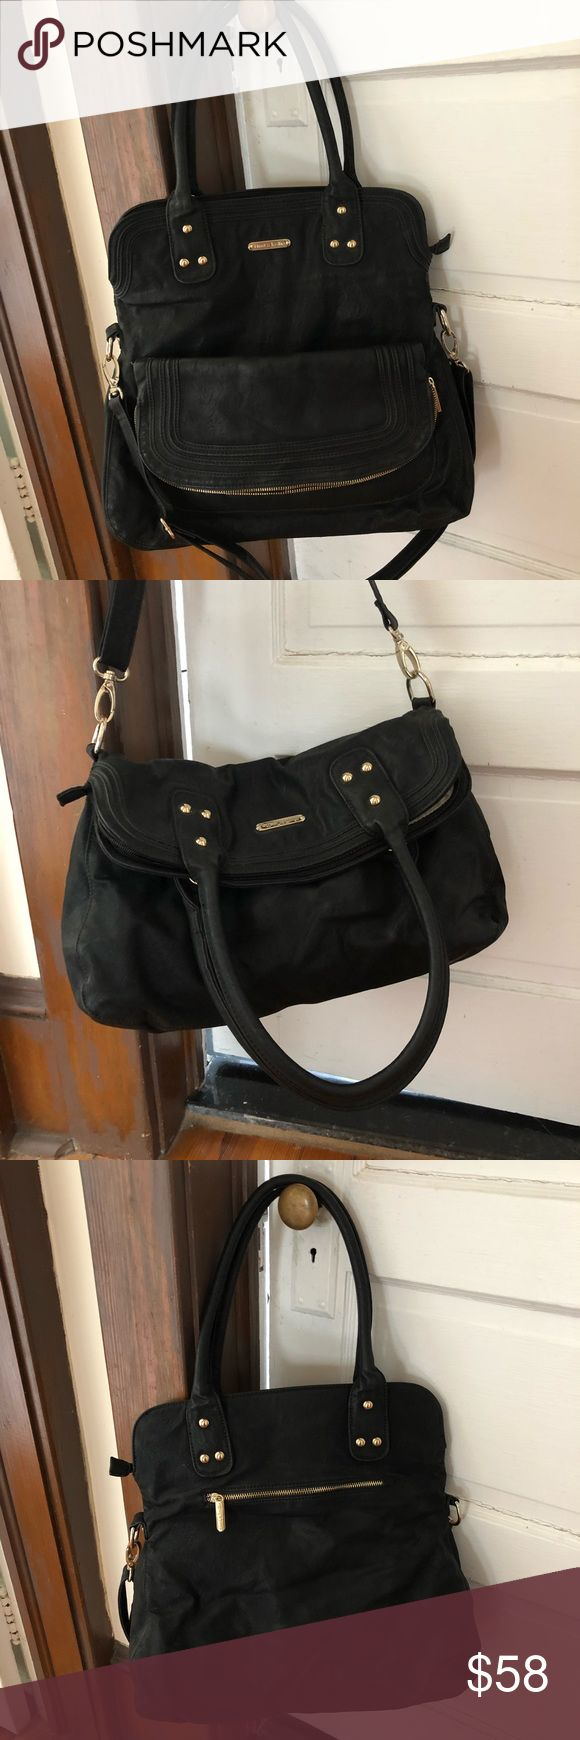 {Timi & Leslie} Hayley Diaper Bag Black leather diaper bag with great inside pockets. Bag comes with matching changing pad. Cross body and stroller straps included. Timi & Leslie Bags Baby Bags